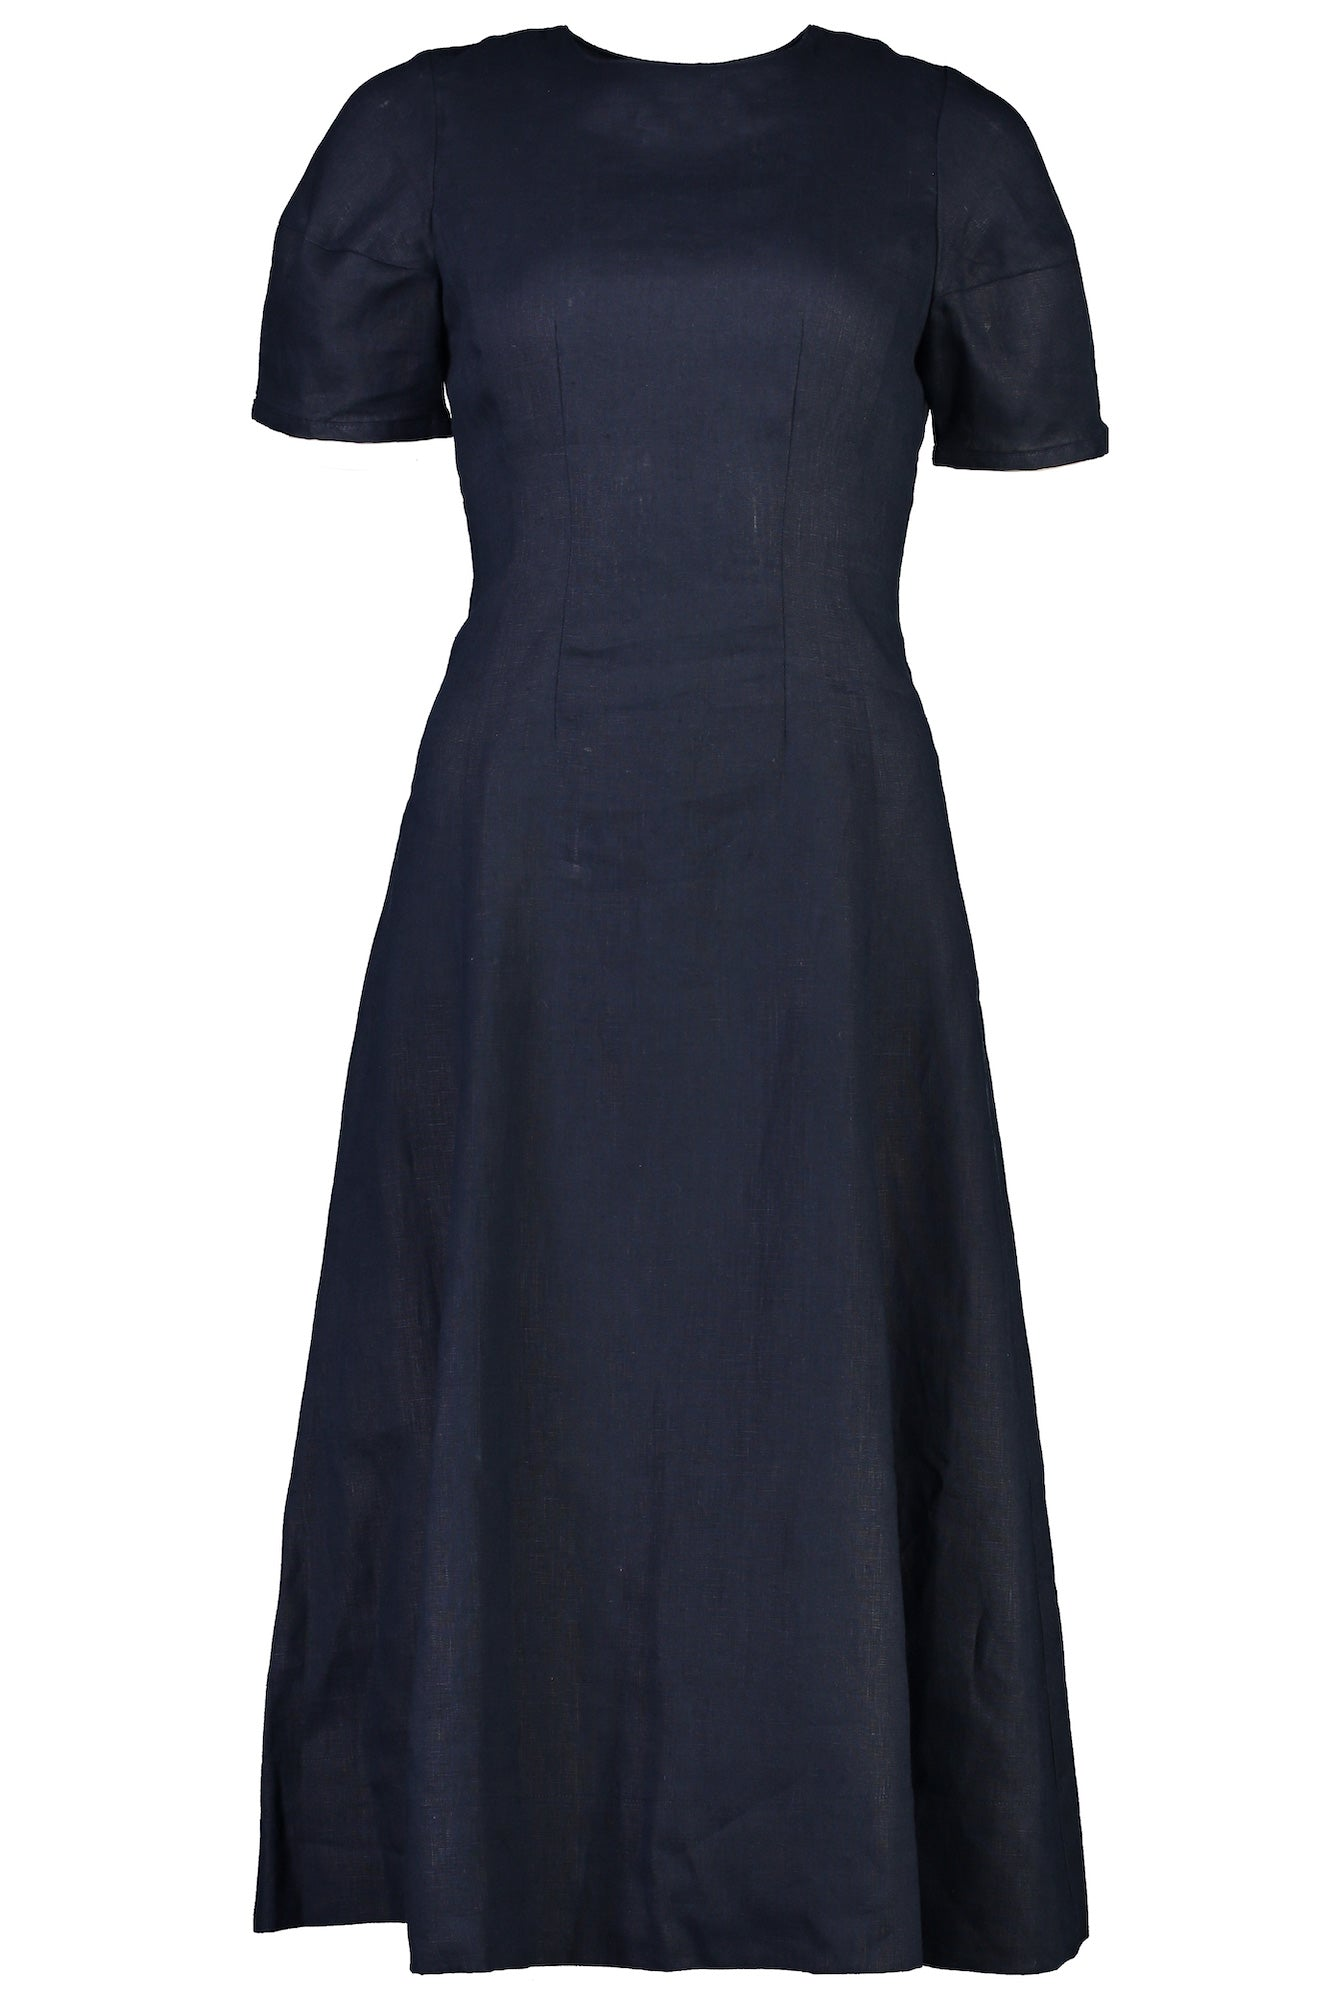 The Indiana Dress in Indigo - hej hej